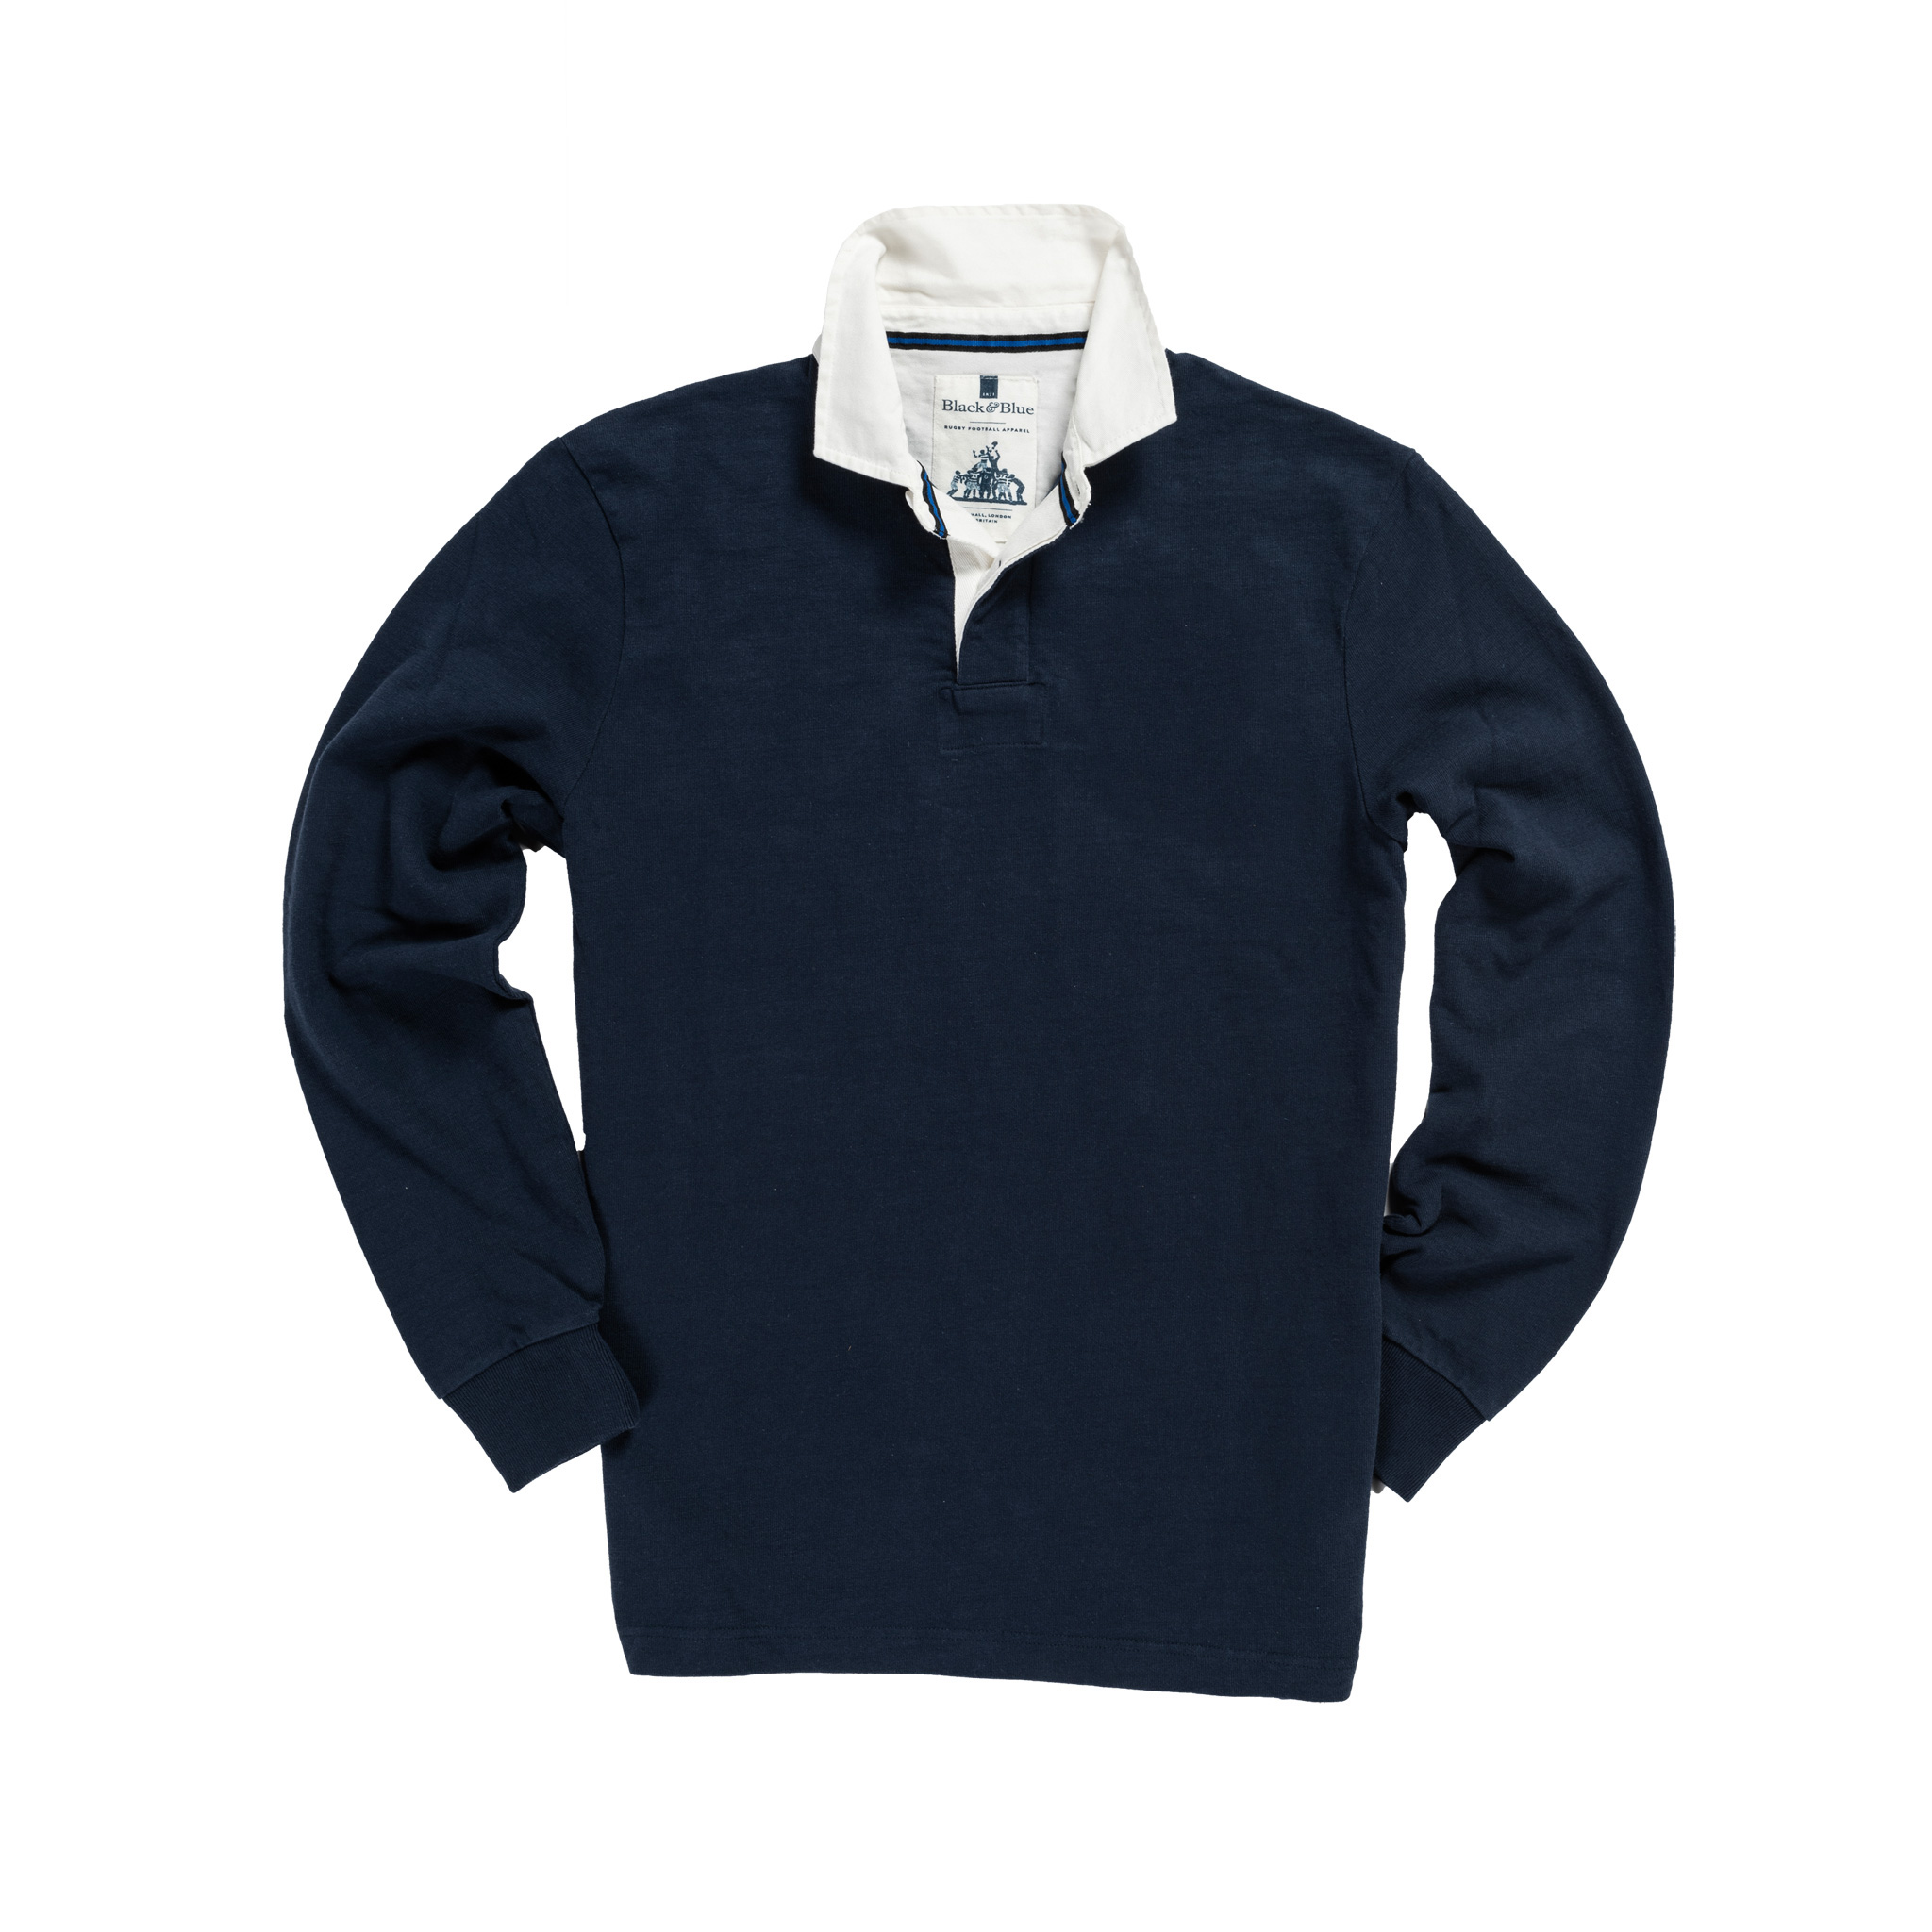 Classic Navy 1871 Vintage Rugby Shirt